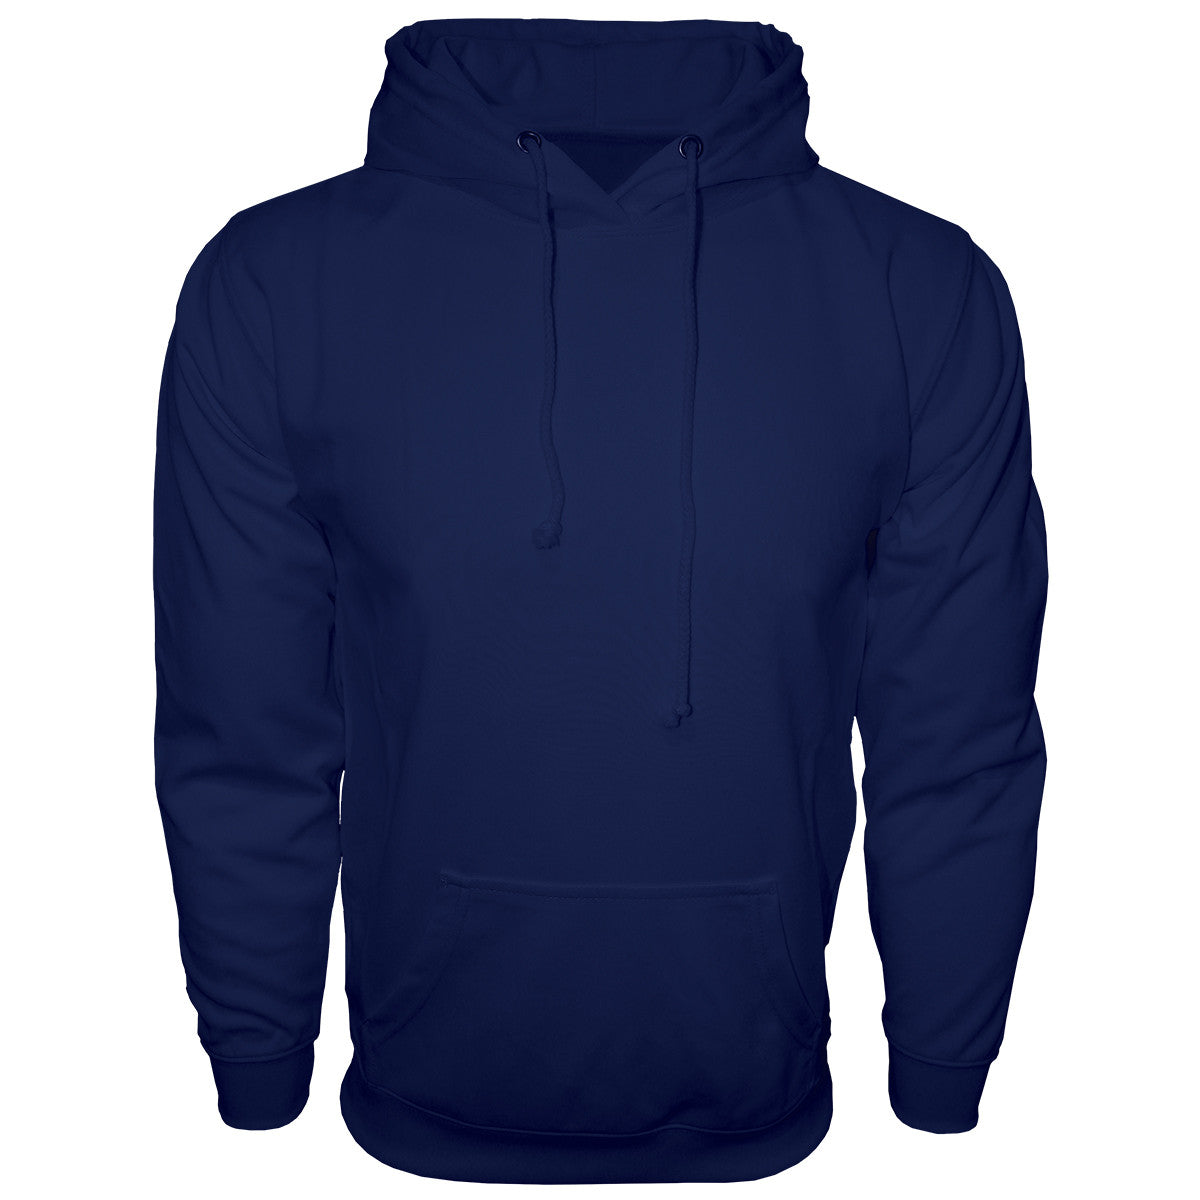 Men's Performance Pullover Hooded Sweatshirt